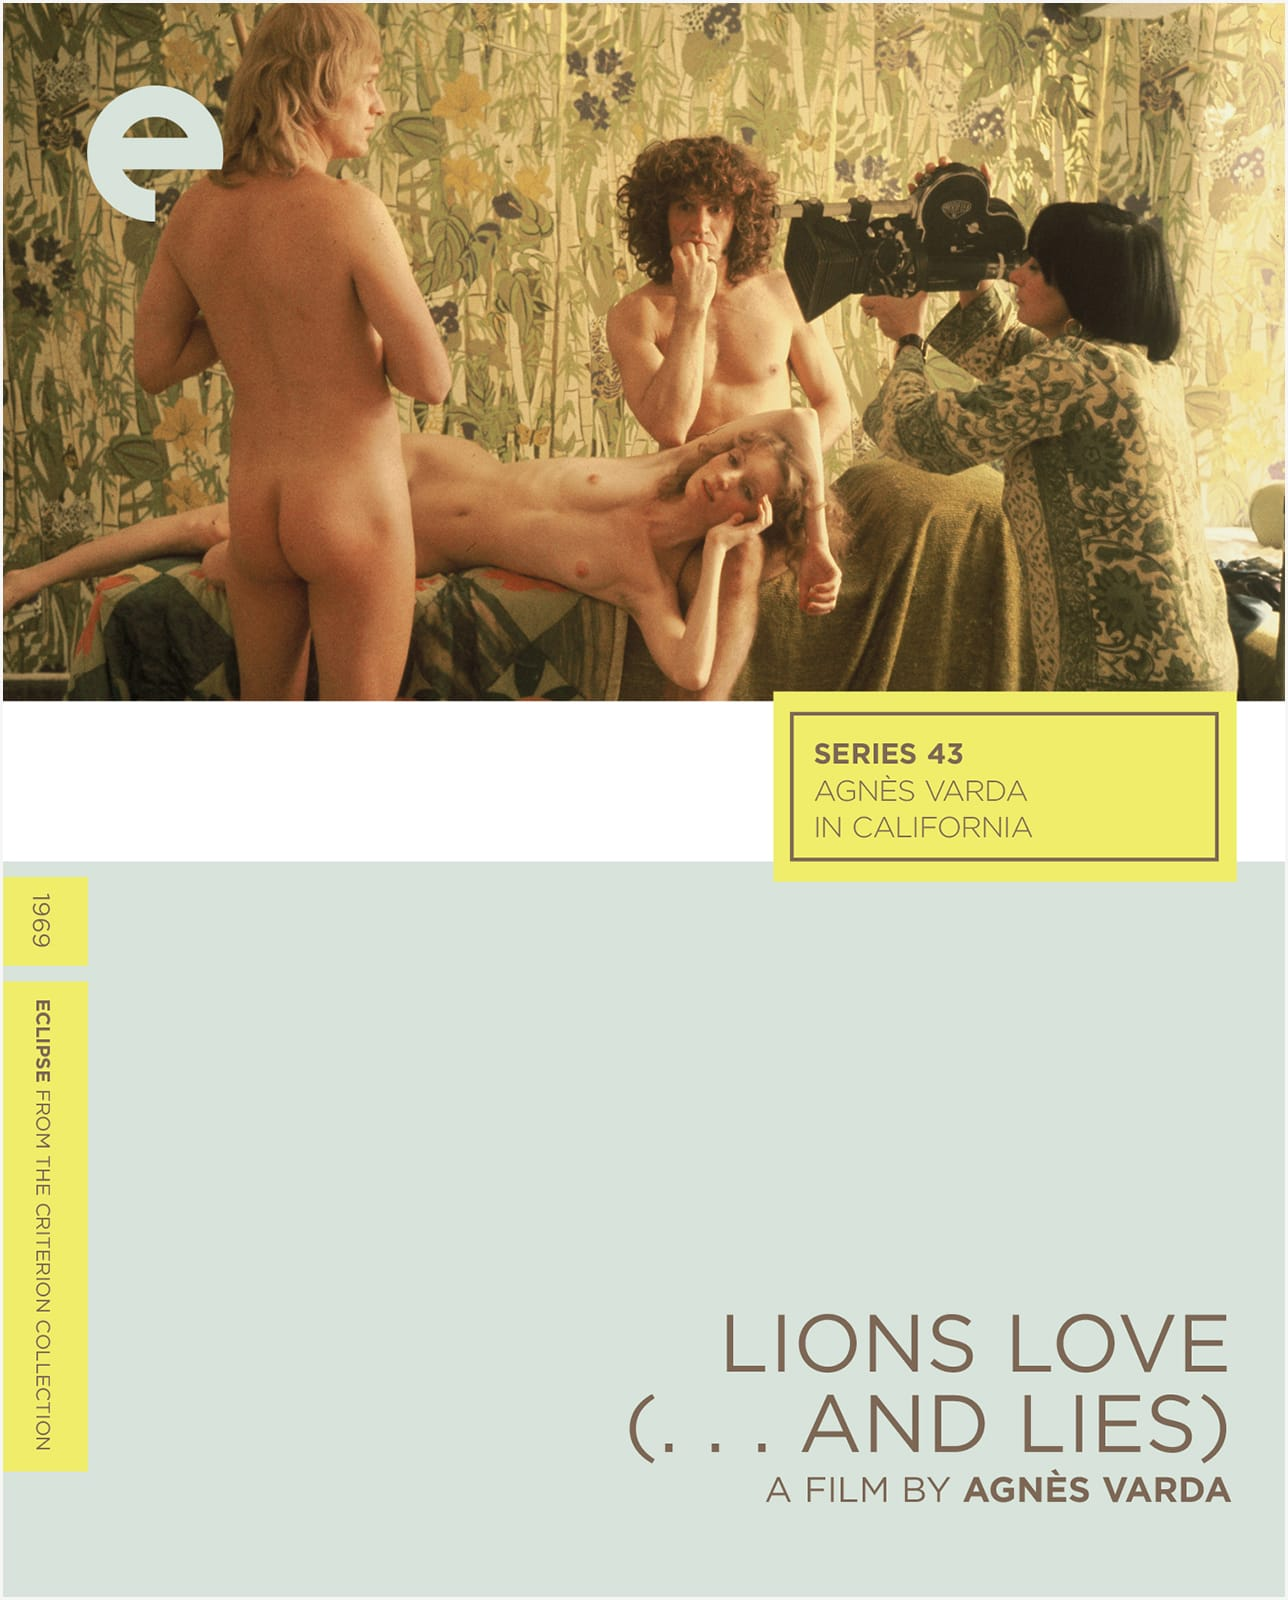 Lions Love (. . . and Lies)